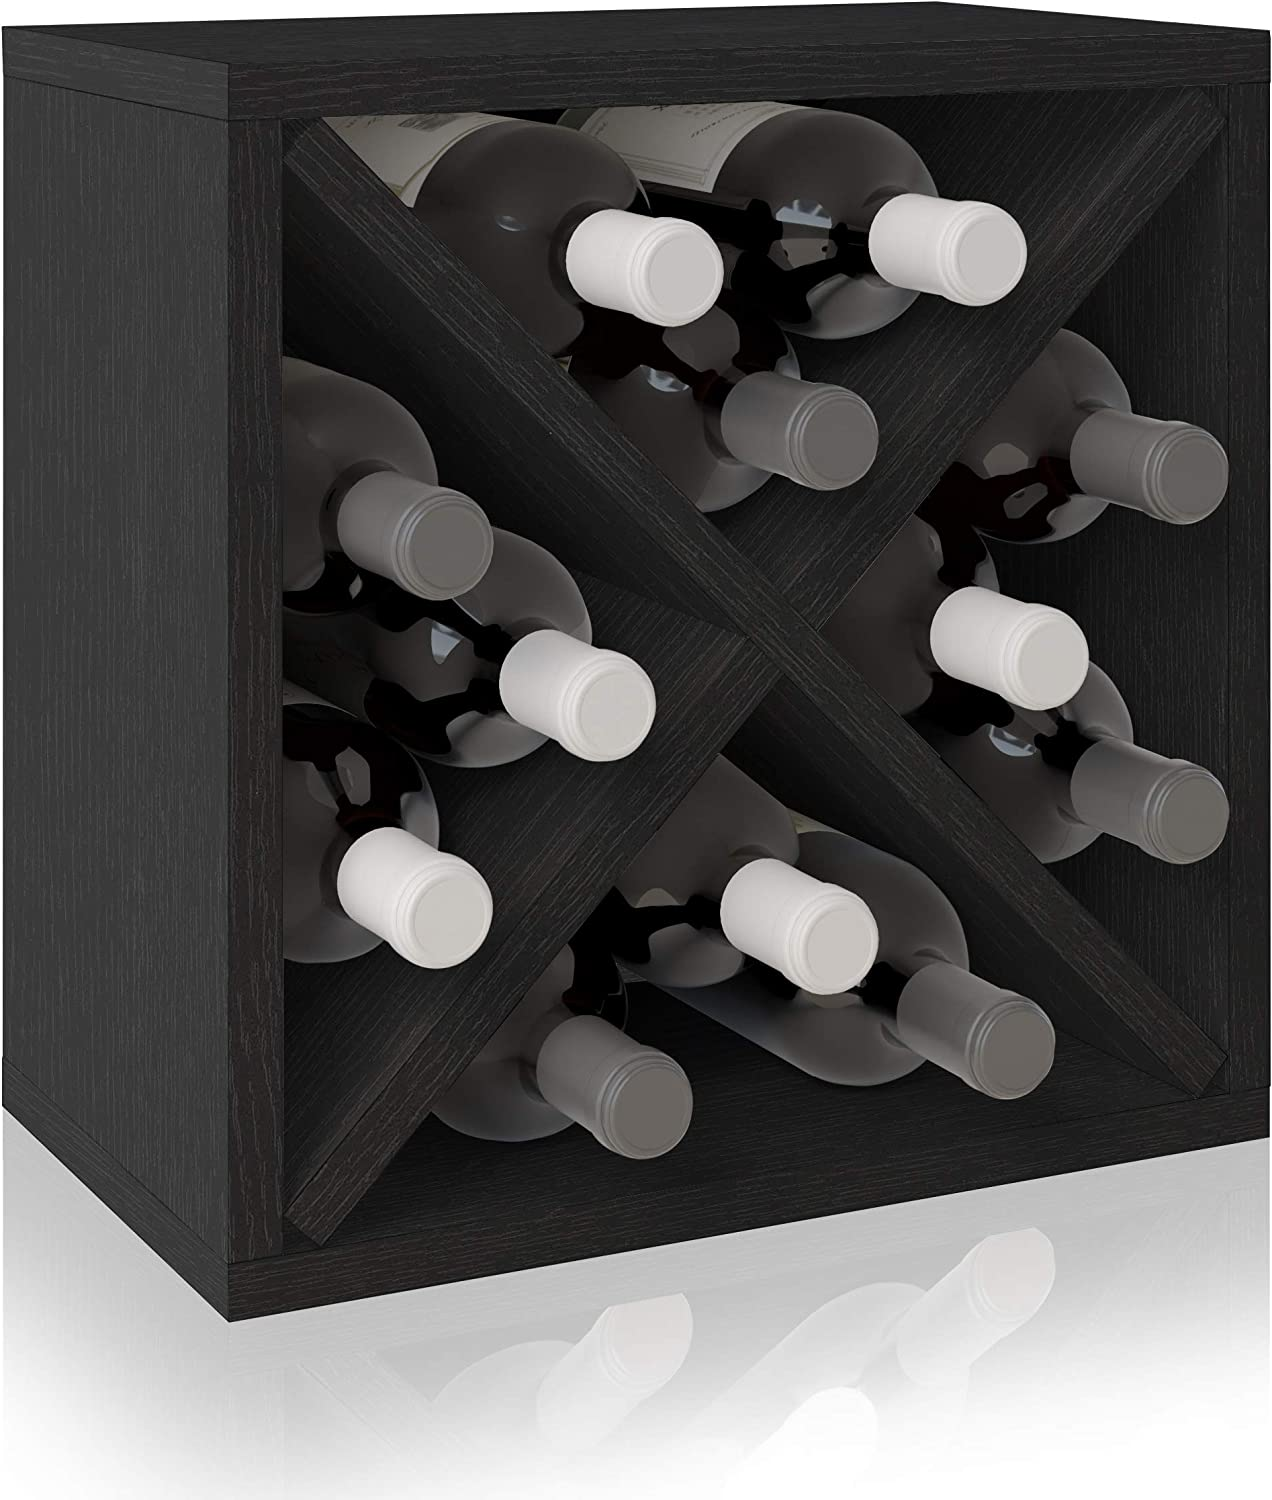 Handmade Wooden 7 Column 105 Bottle Display Row Wine Cellar Kit in Premium Redwood 13 Stain Combinations to Choose From!